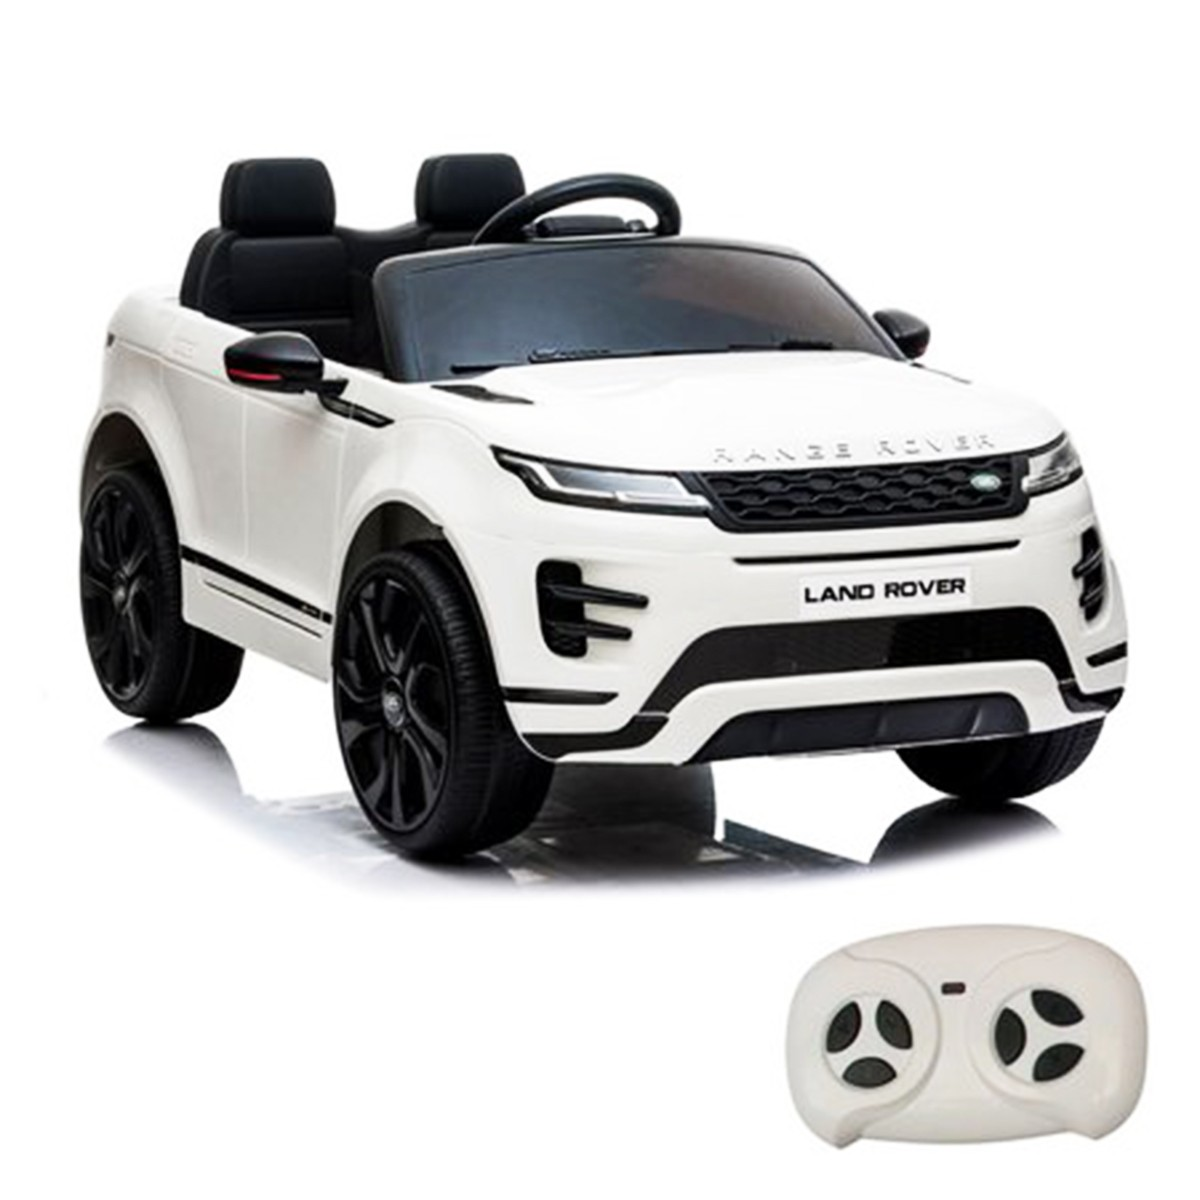 Mini Carro Eletrico Licenciado Land Rover Evoque Branco